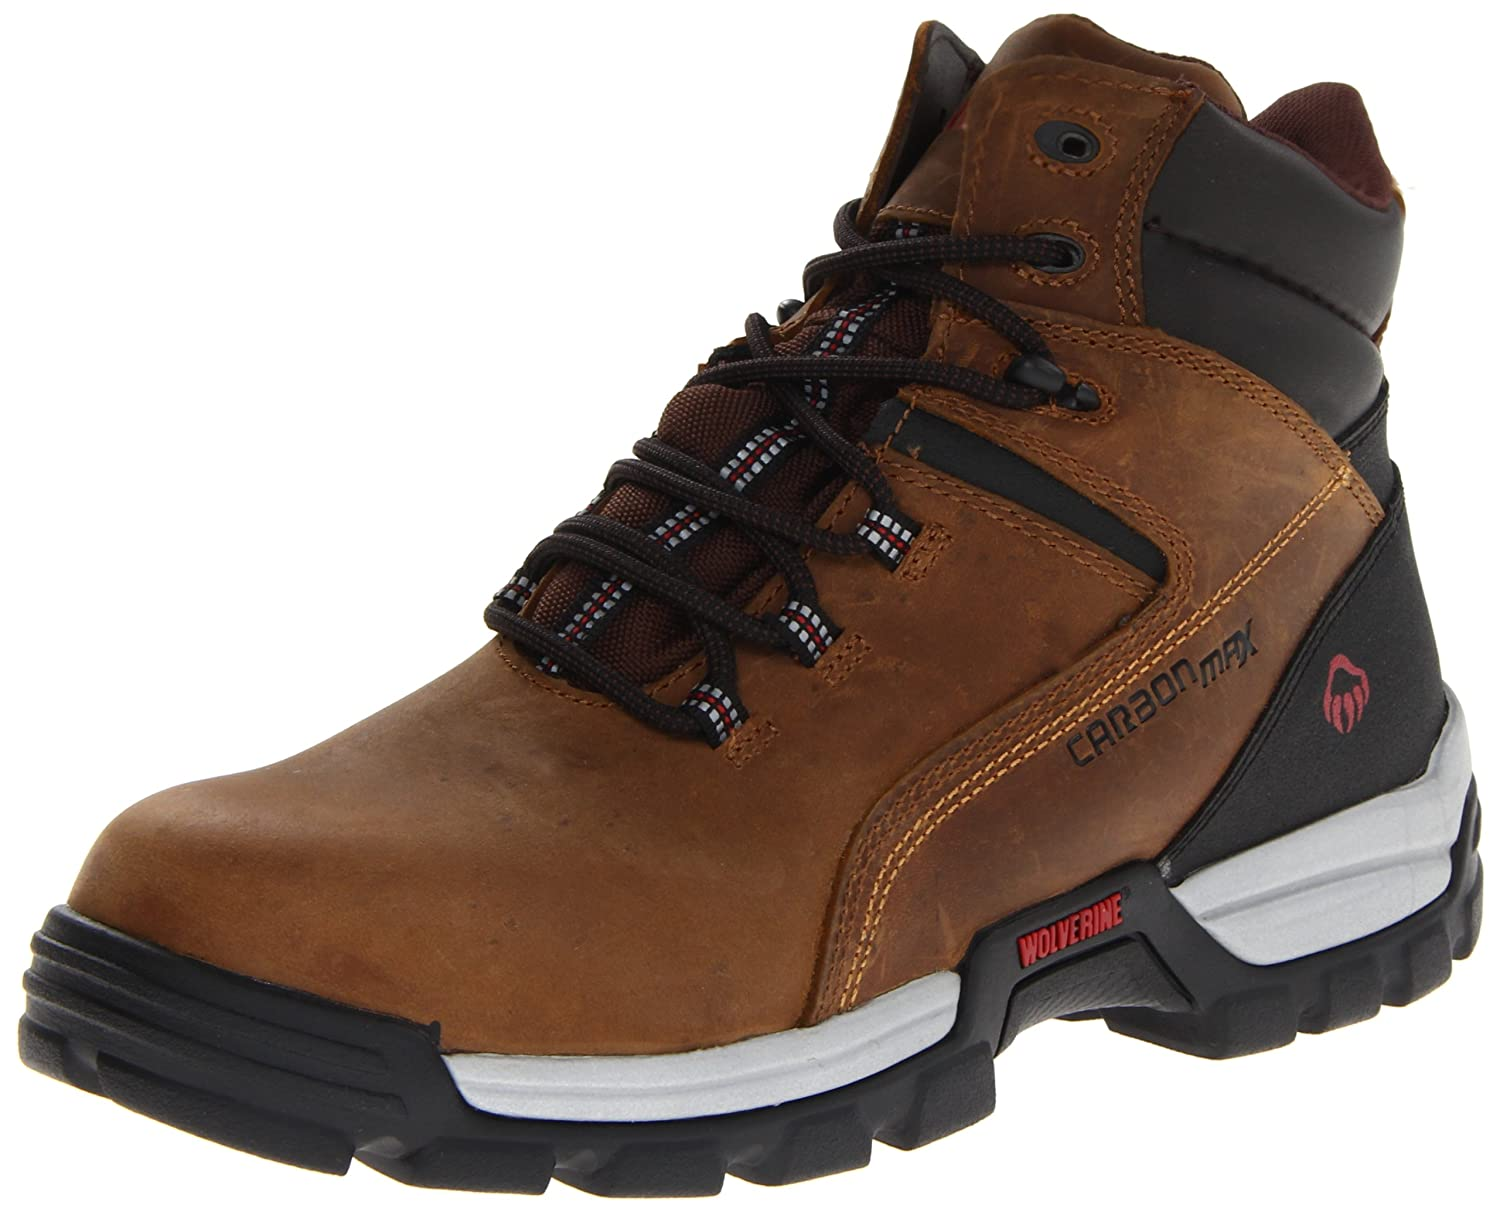 Men's Work and Safety Shoes | Amazon.com